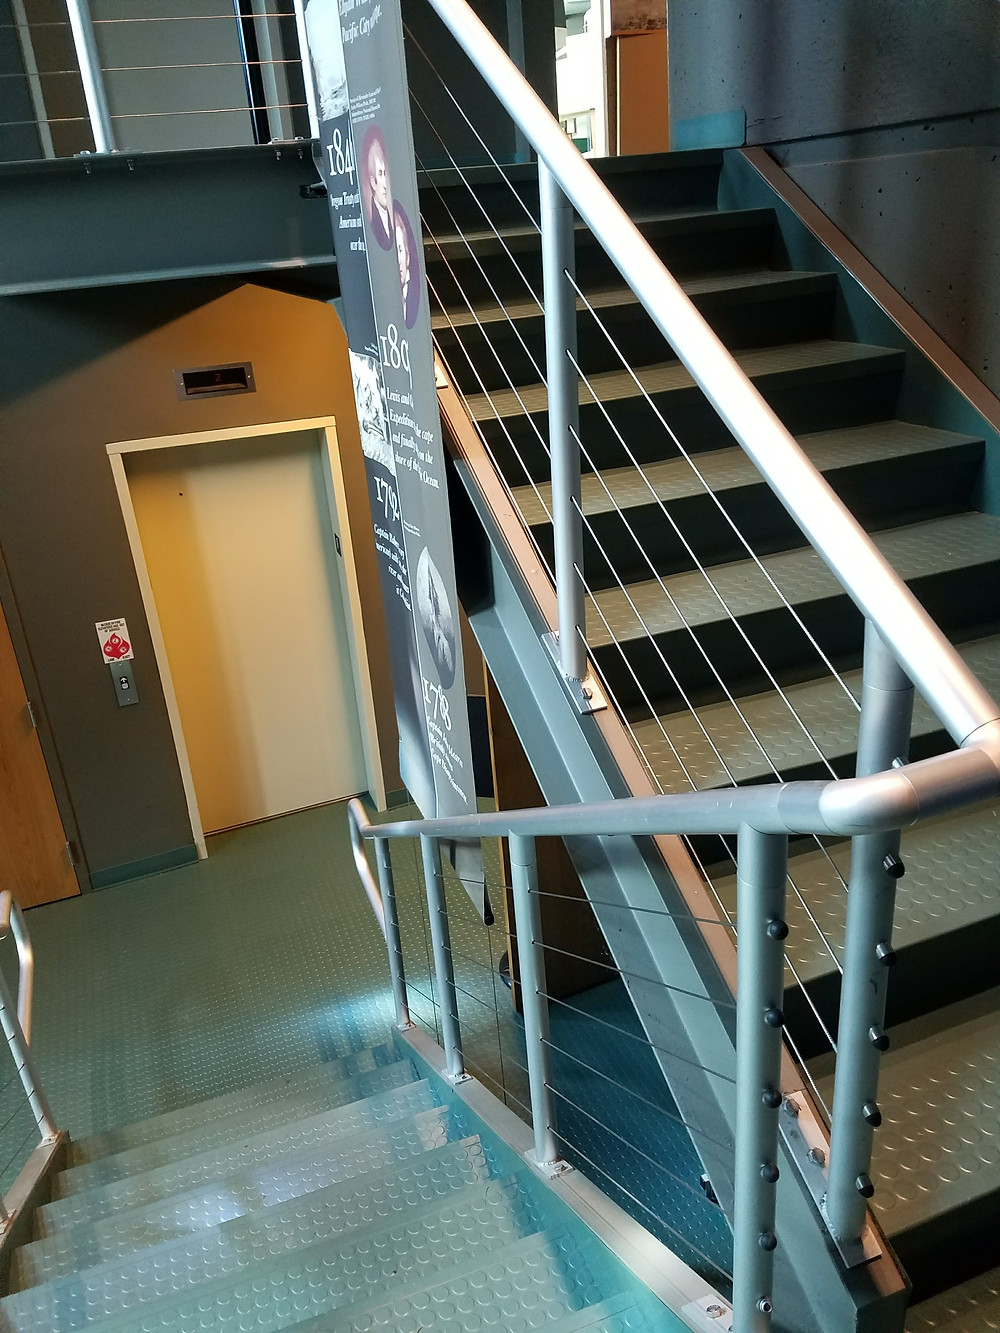 Stairwell of the Lewis and Clark Interpretive Museum